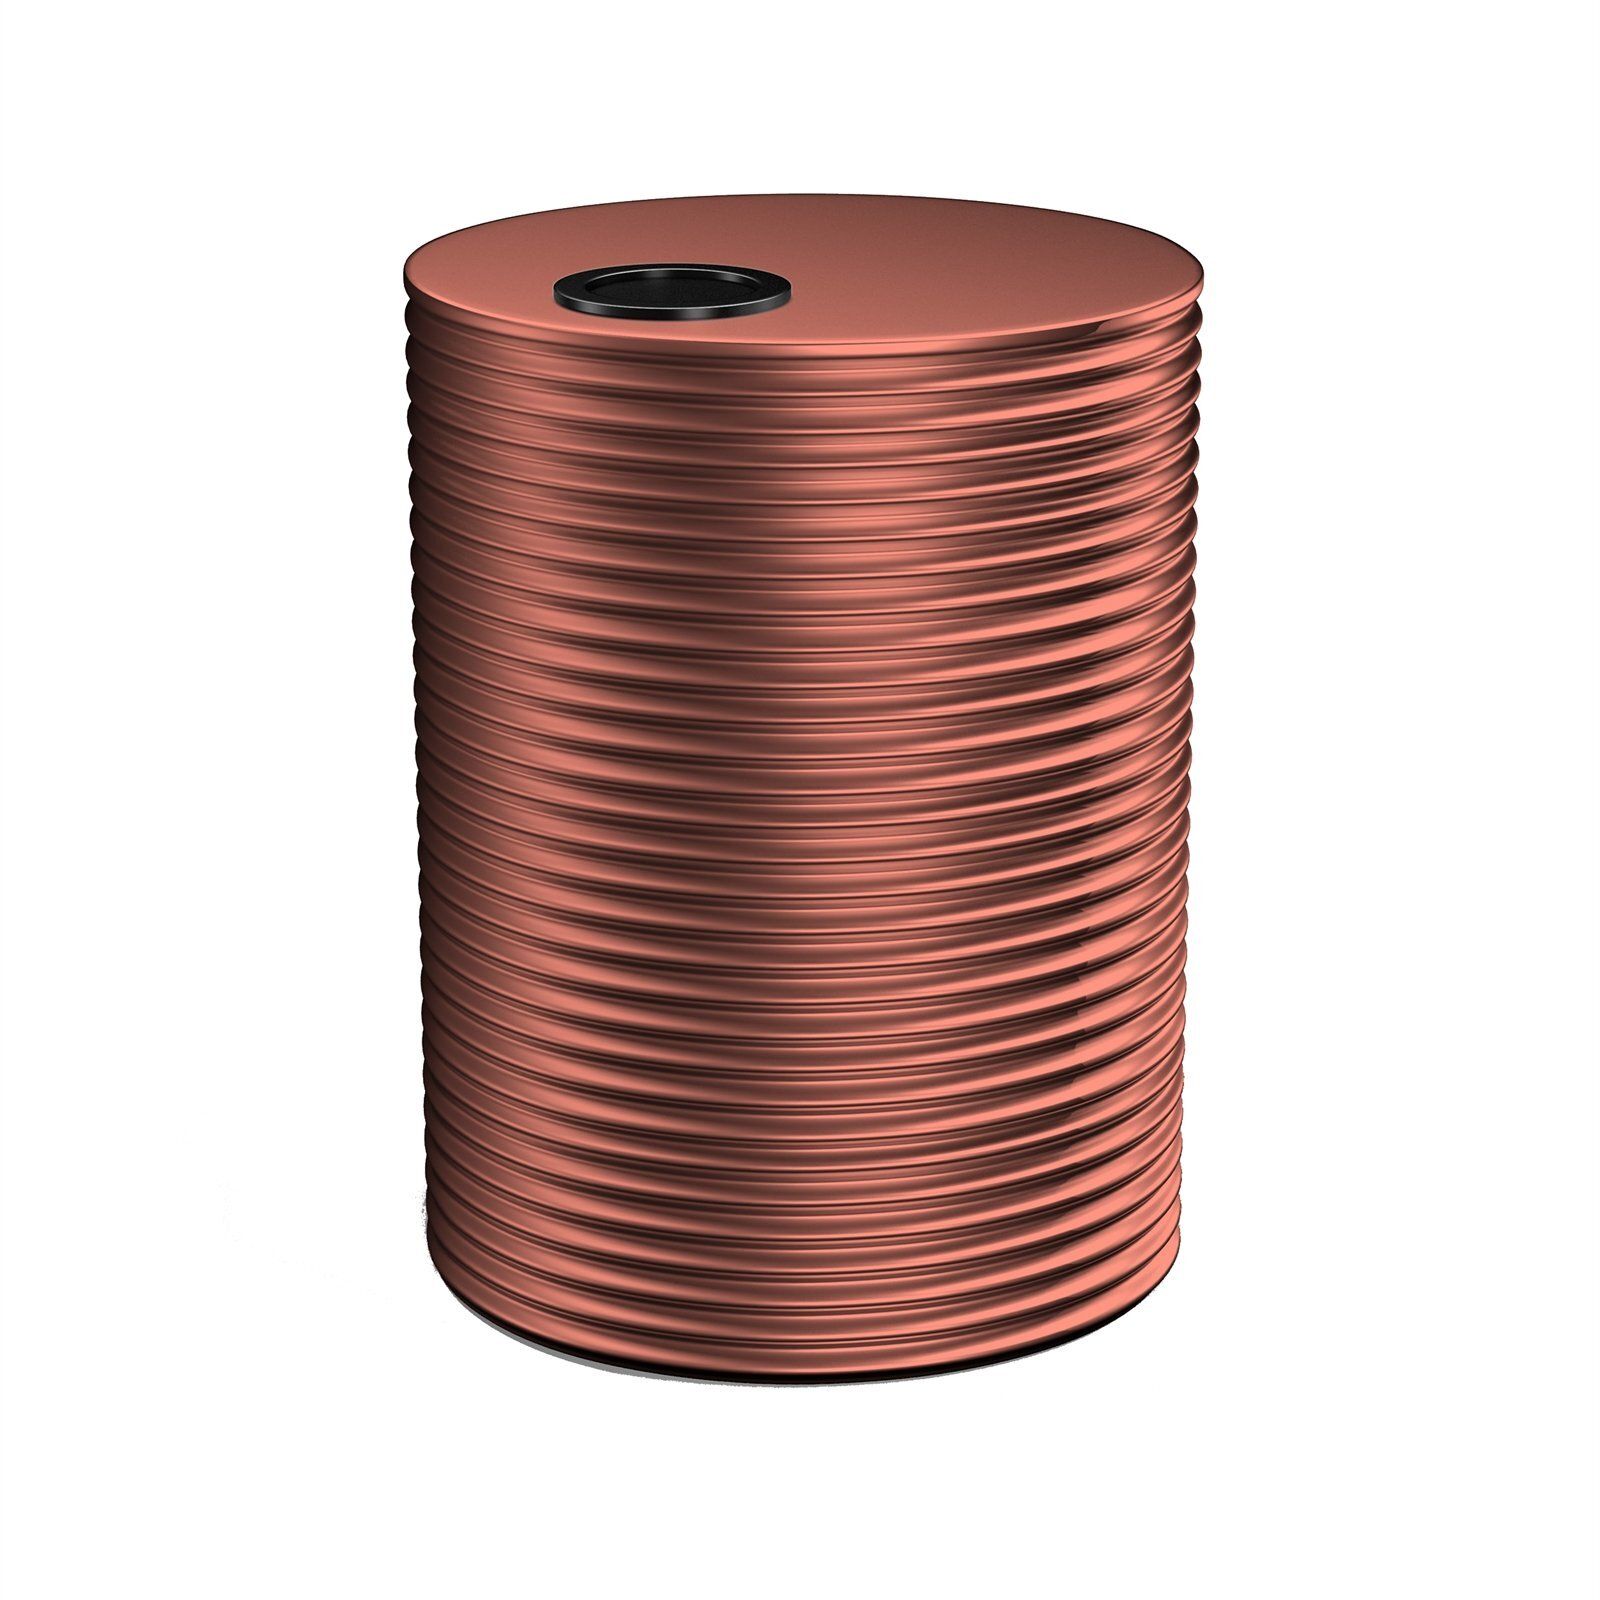 Kingspan 3000L Round Steel Water Tank - 1500mm x 1860mm Manor Red